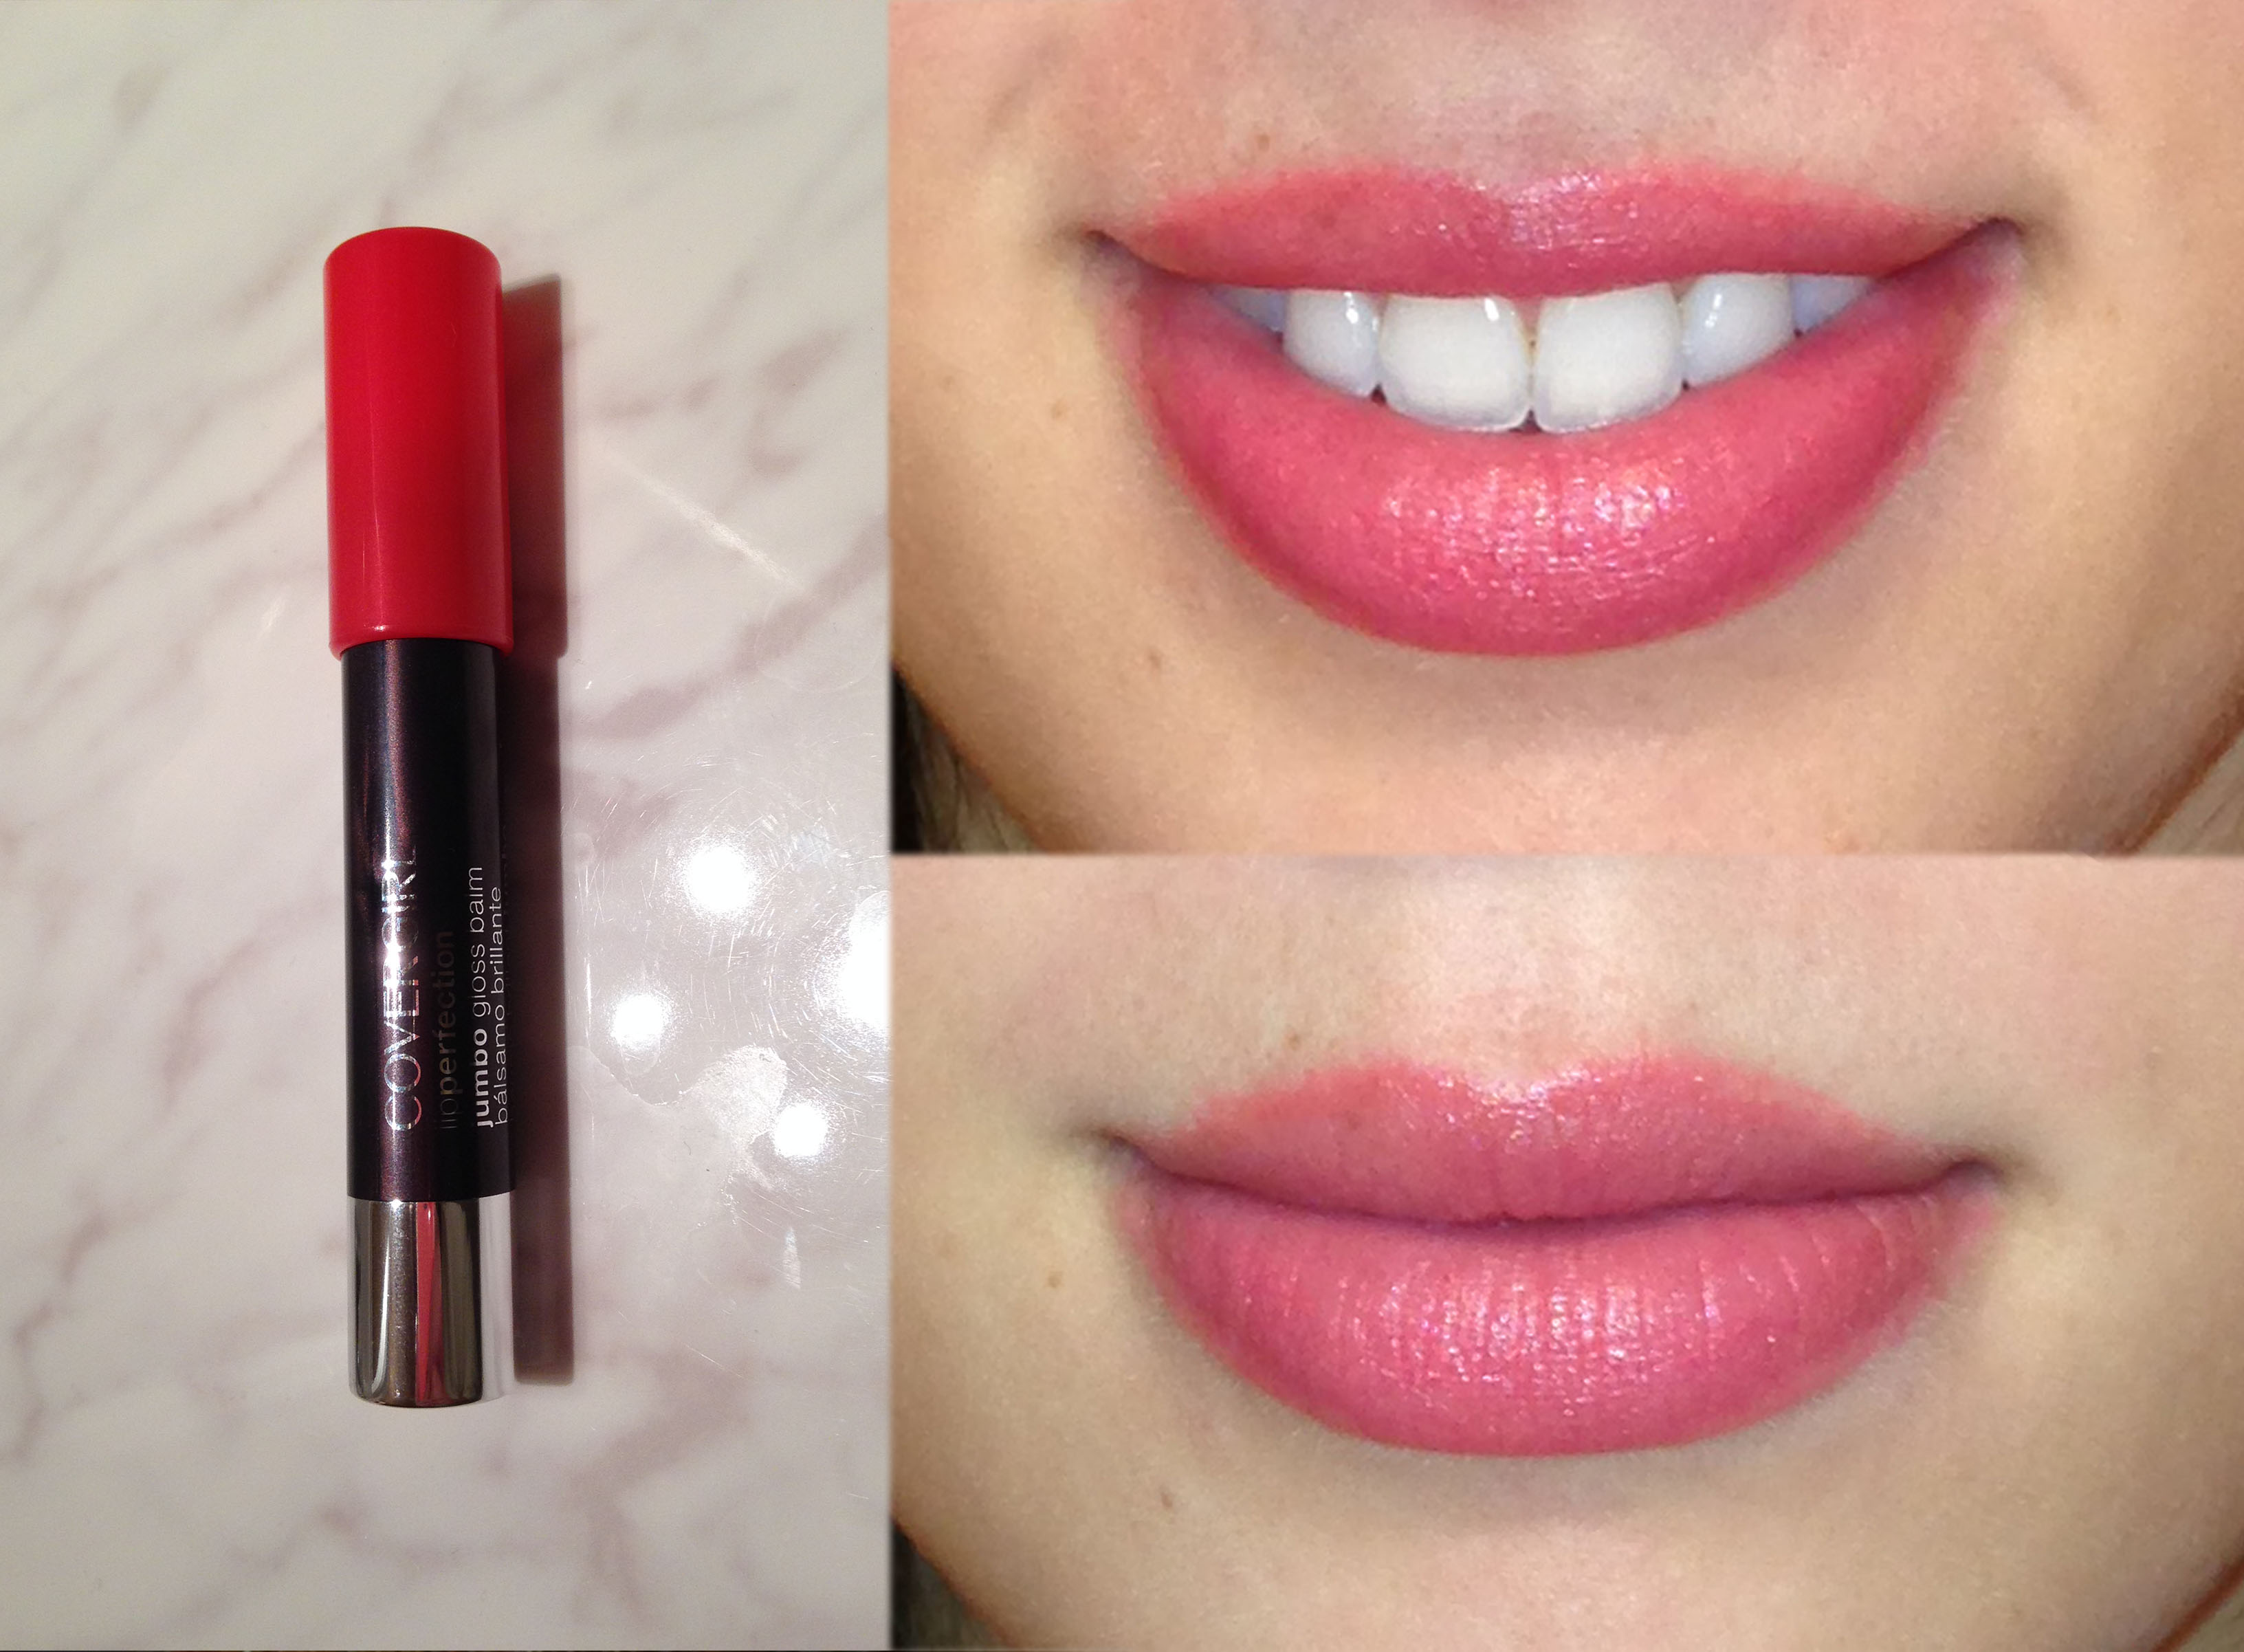 COVERGIRL Jumbo Gloss Balm Coral Twist Review